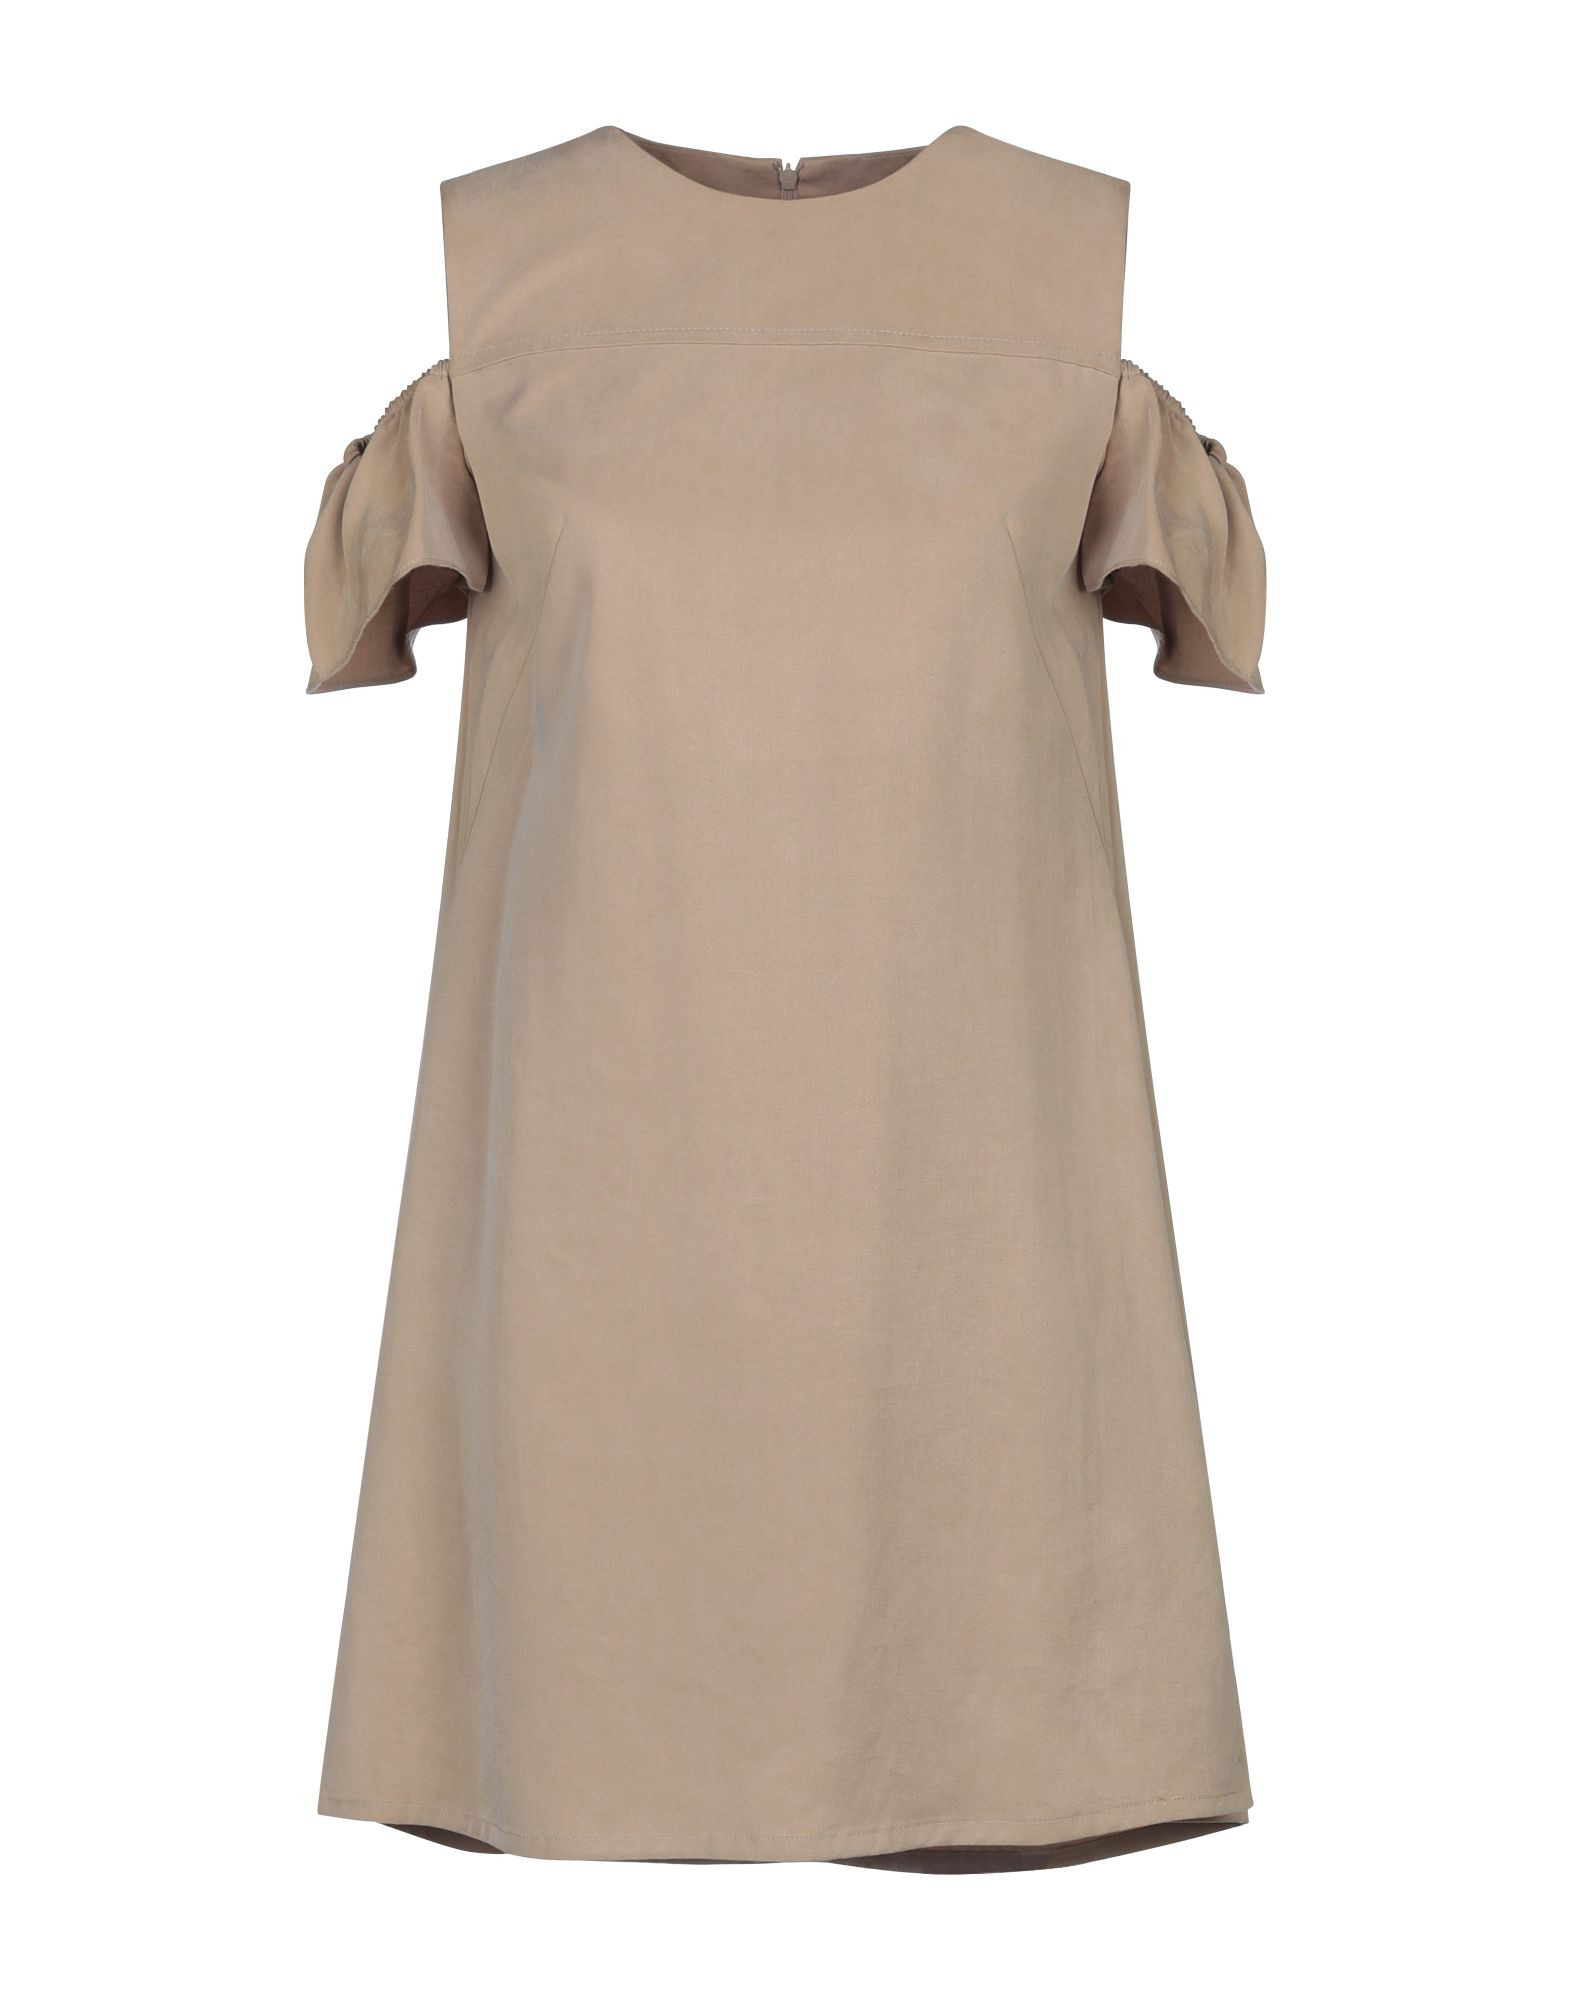 AKRIS PUNTO Short dresses. twill, no appliqués, basic solid color, round collar, short sleeves, multipockets, dual side vents, rear closure, zip, fully lined. 100% Lyocell